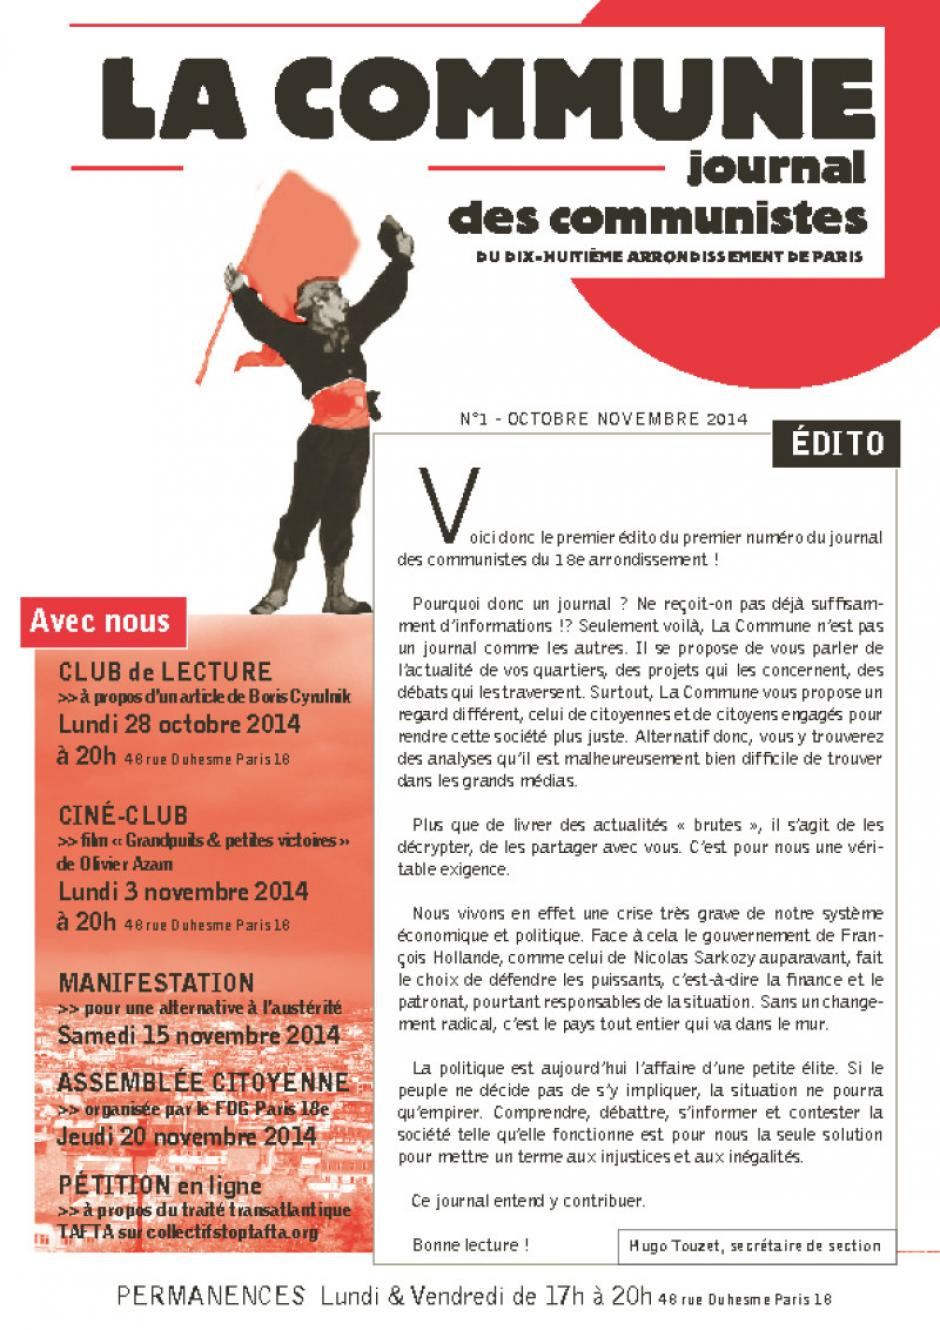 JOURNAL DE LA SECTION DU 18e : La Commune